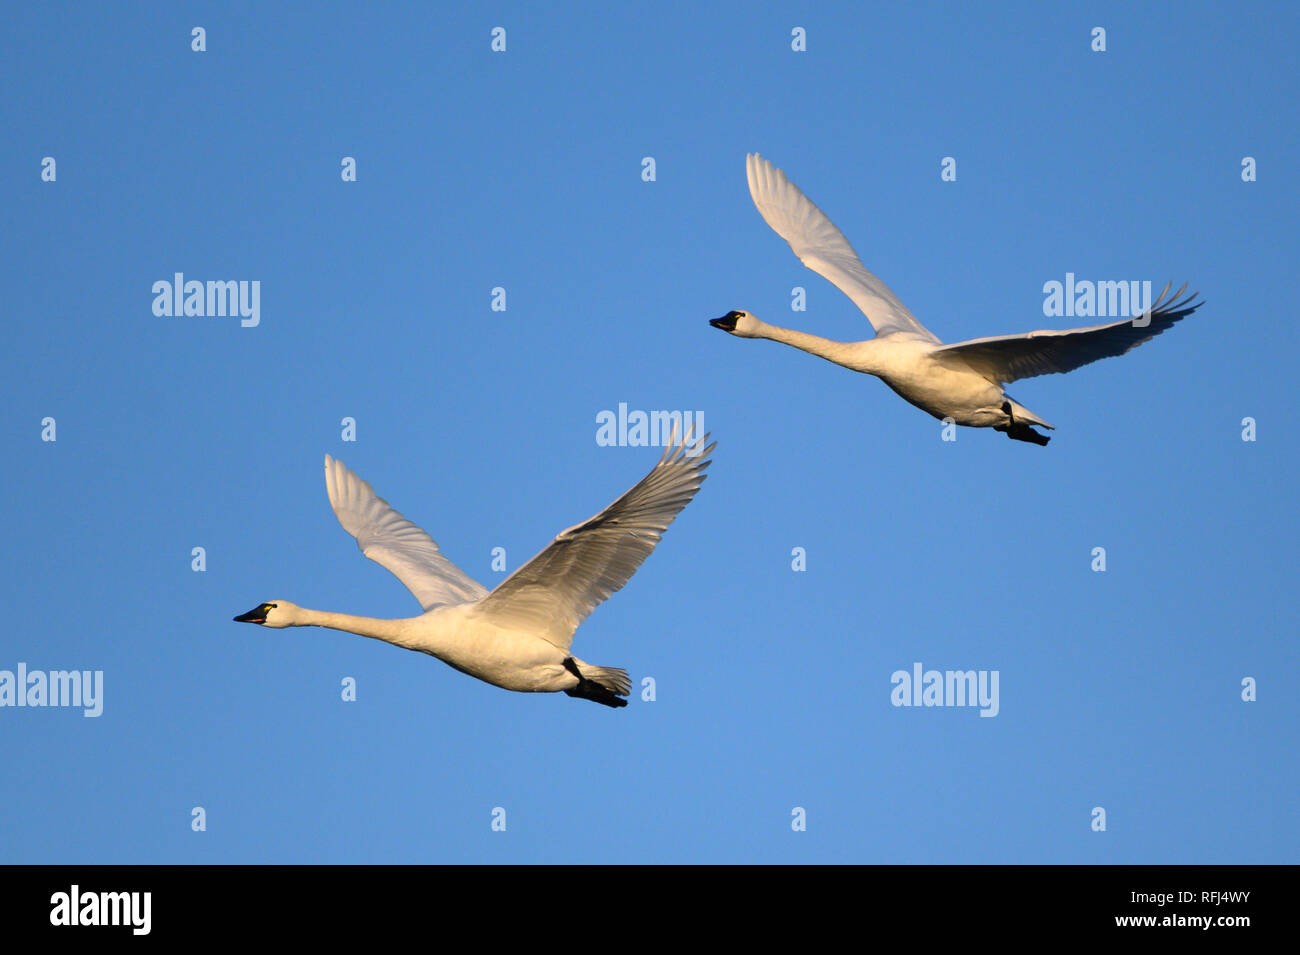 Tundra Swans at William L. Finley National Wildlife Refuge, Willamette Valley, Oregon. - Stock Image